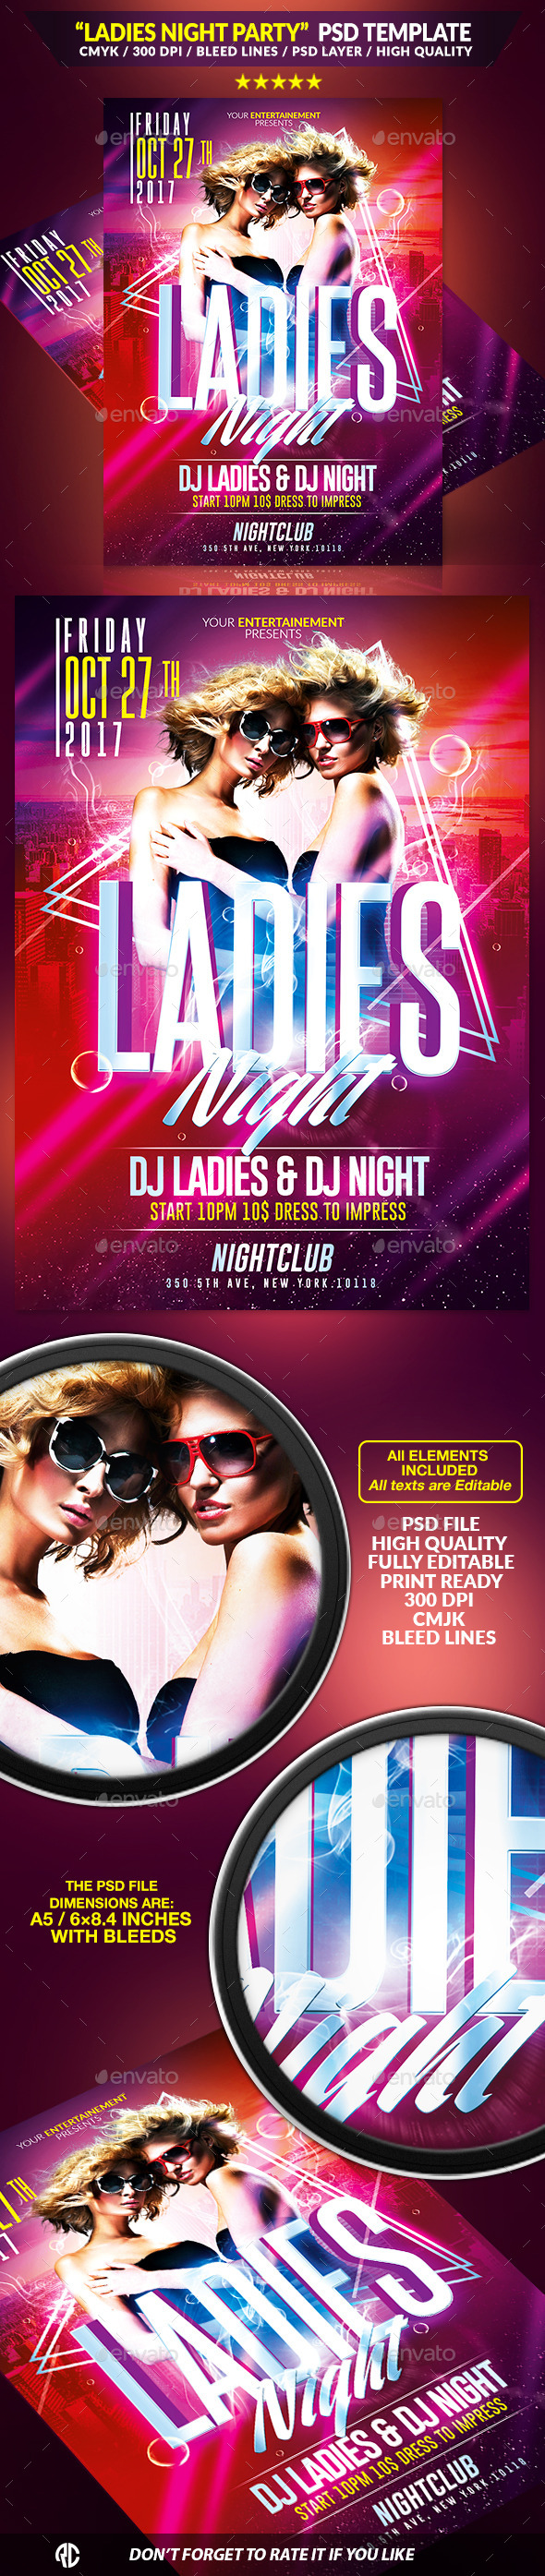 Ladies Night Party | Psd Template - Clubs & Parties Events